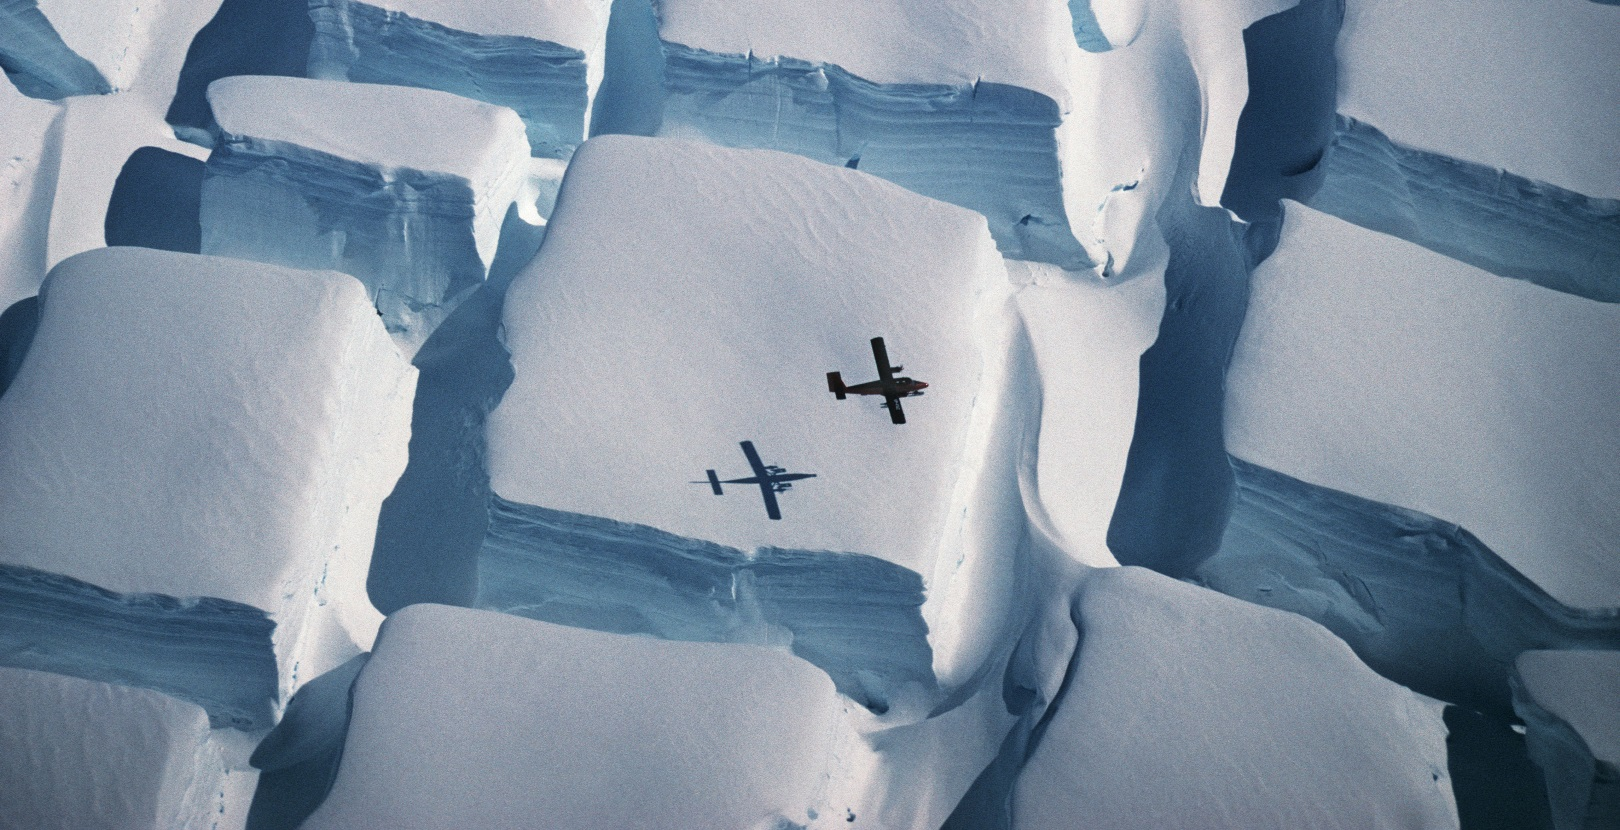 Plane flying over Antarctica. By Peter Convey